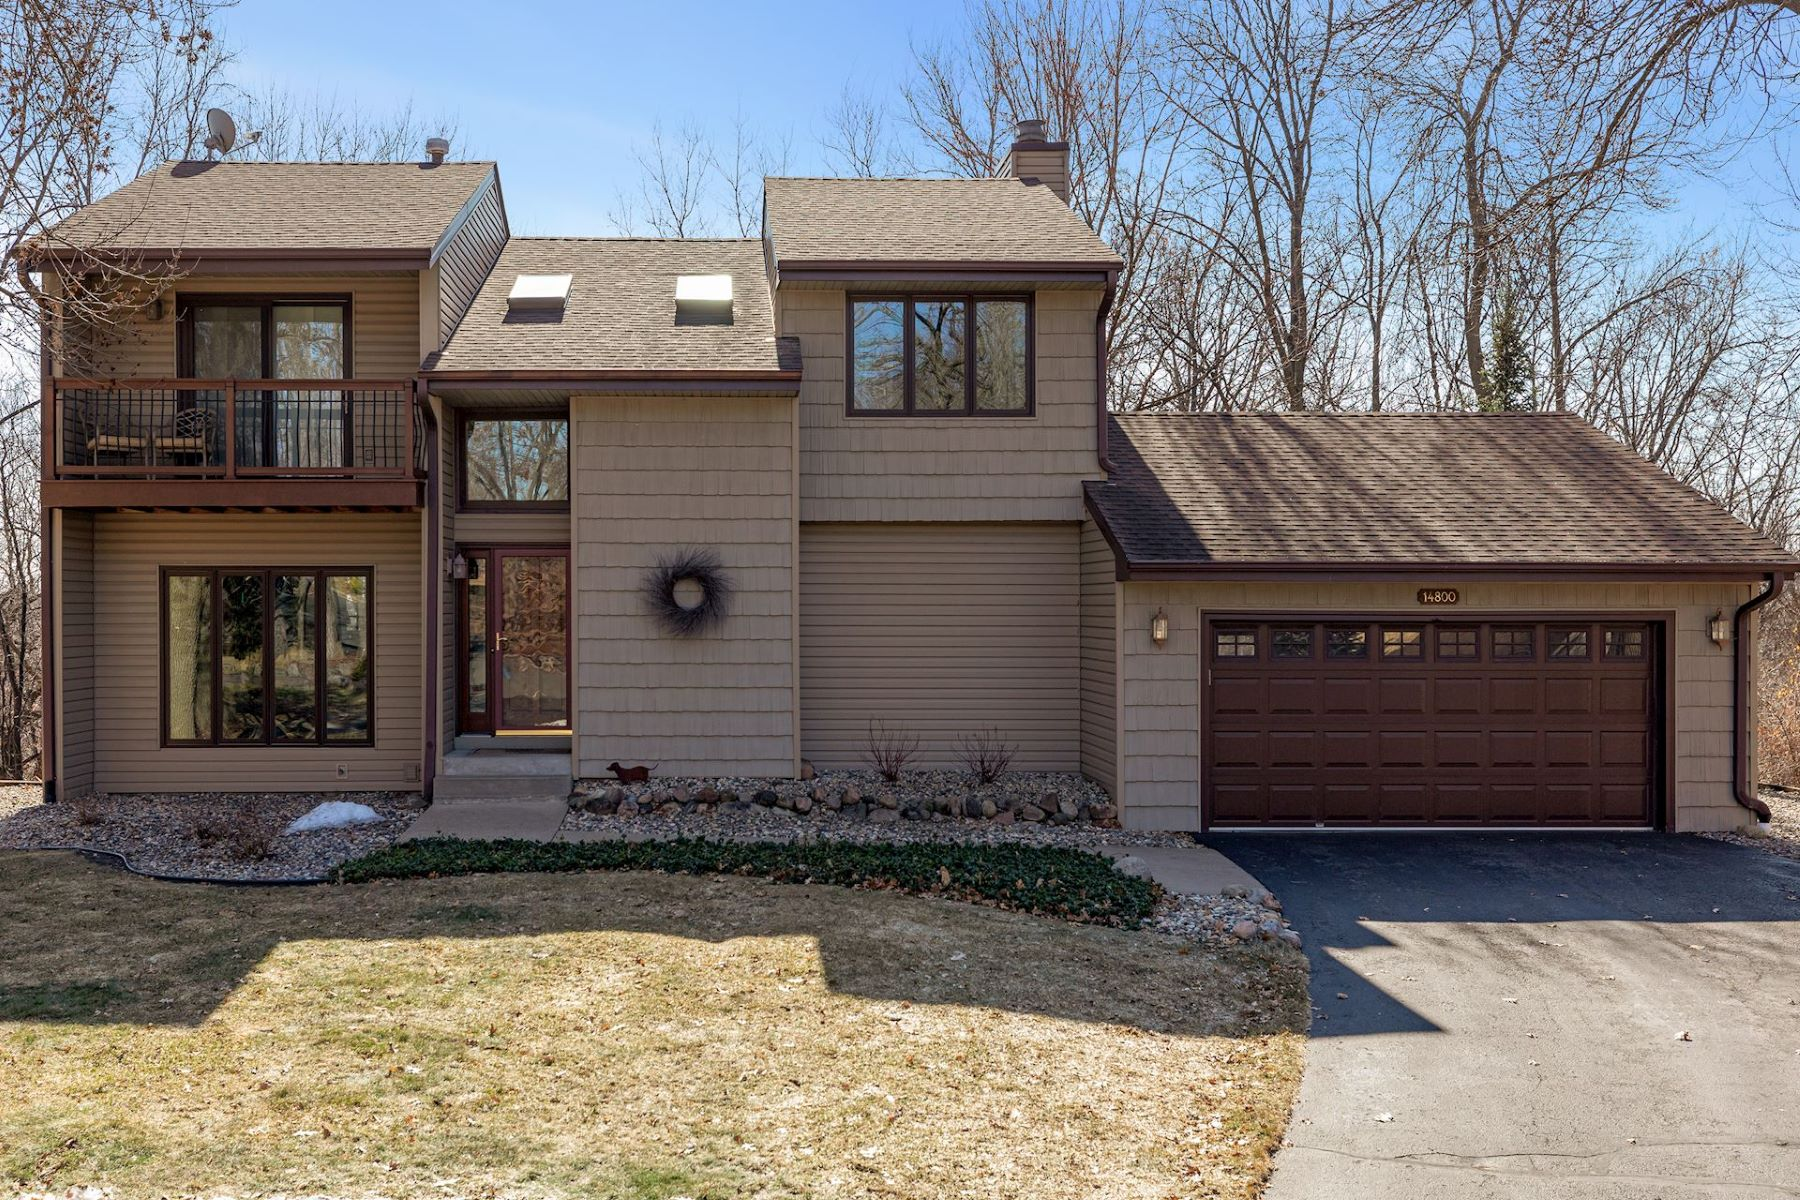 Single Family Homes for Sale at Fabulous 3 Bedroom Home in Award Winning Eden Prairie on private cul-de-sac. 14800 Ironwood Court Eden Prairie, Minnesota 55346 United States